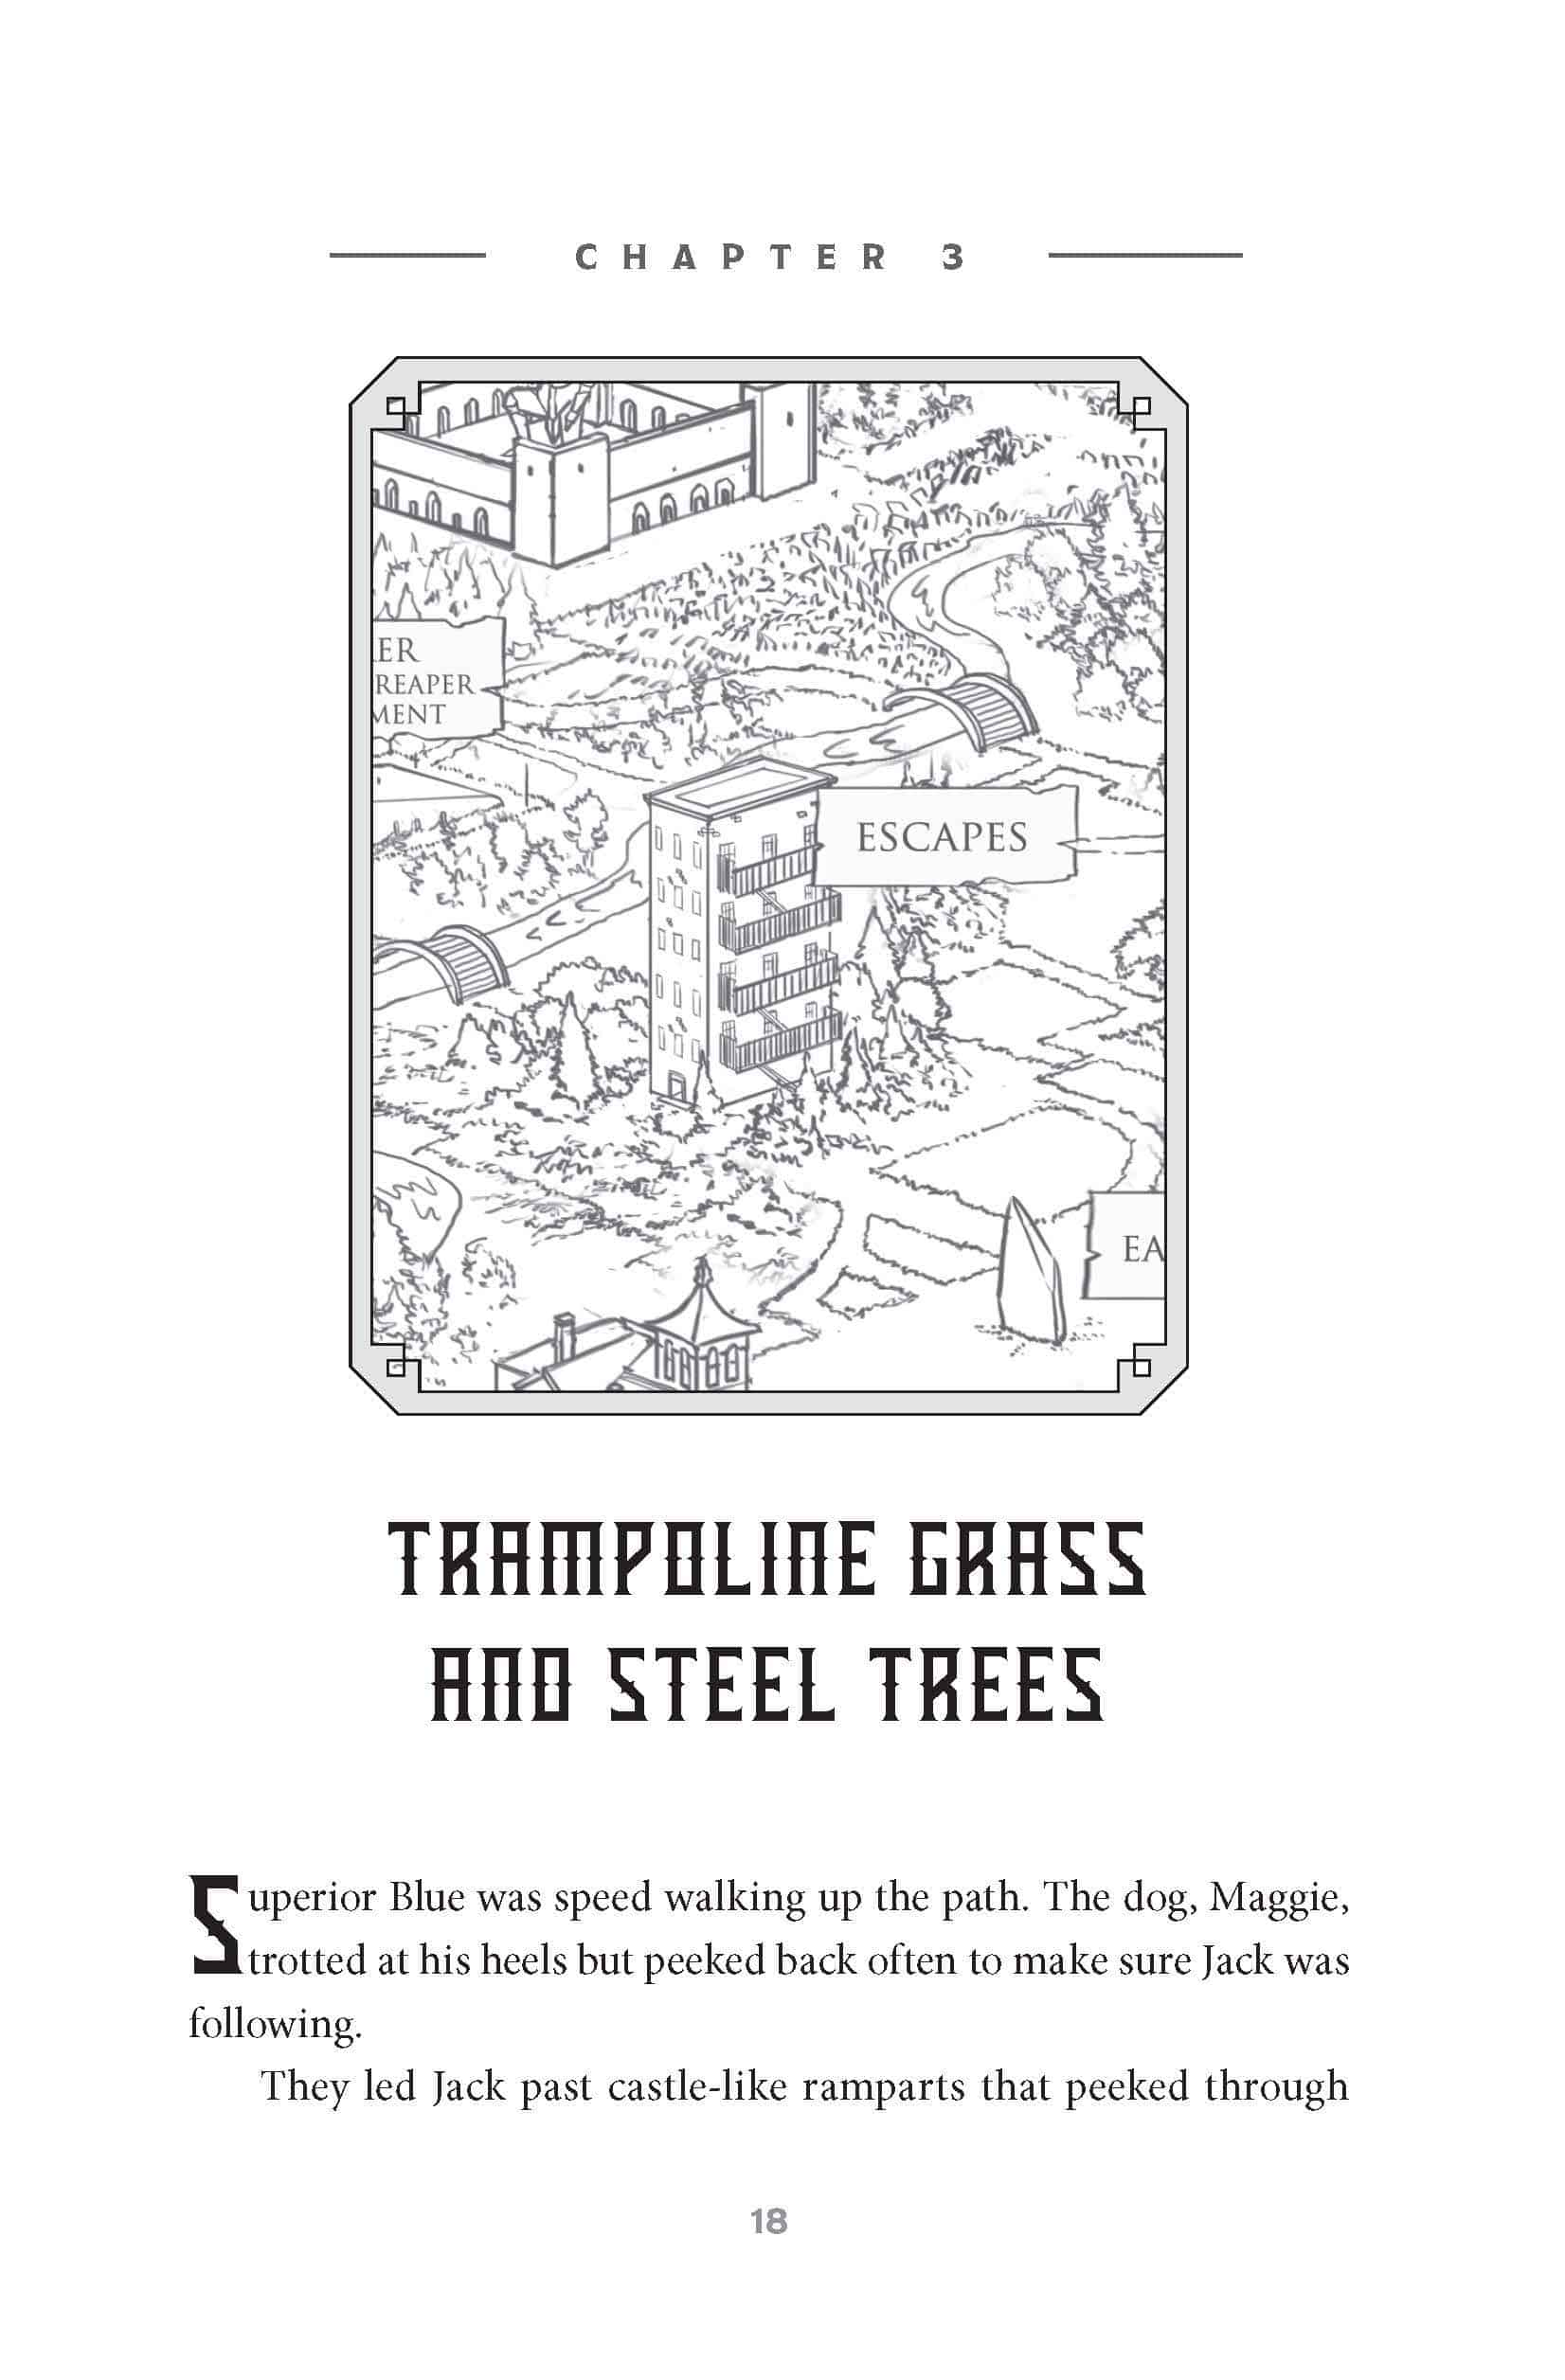 Illustration of the trampoline grass and steel trees